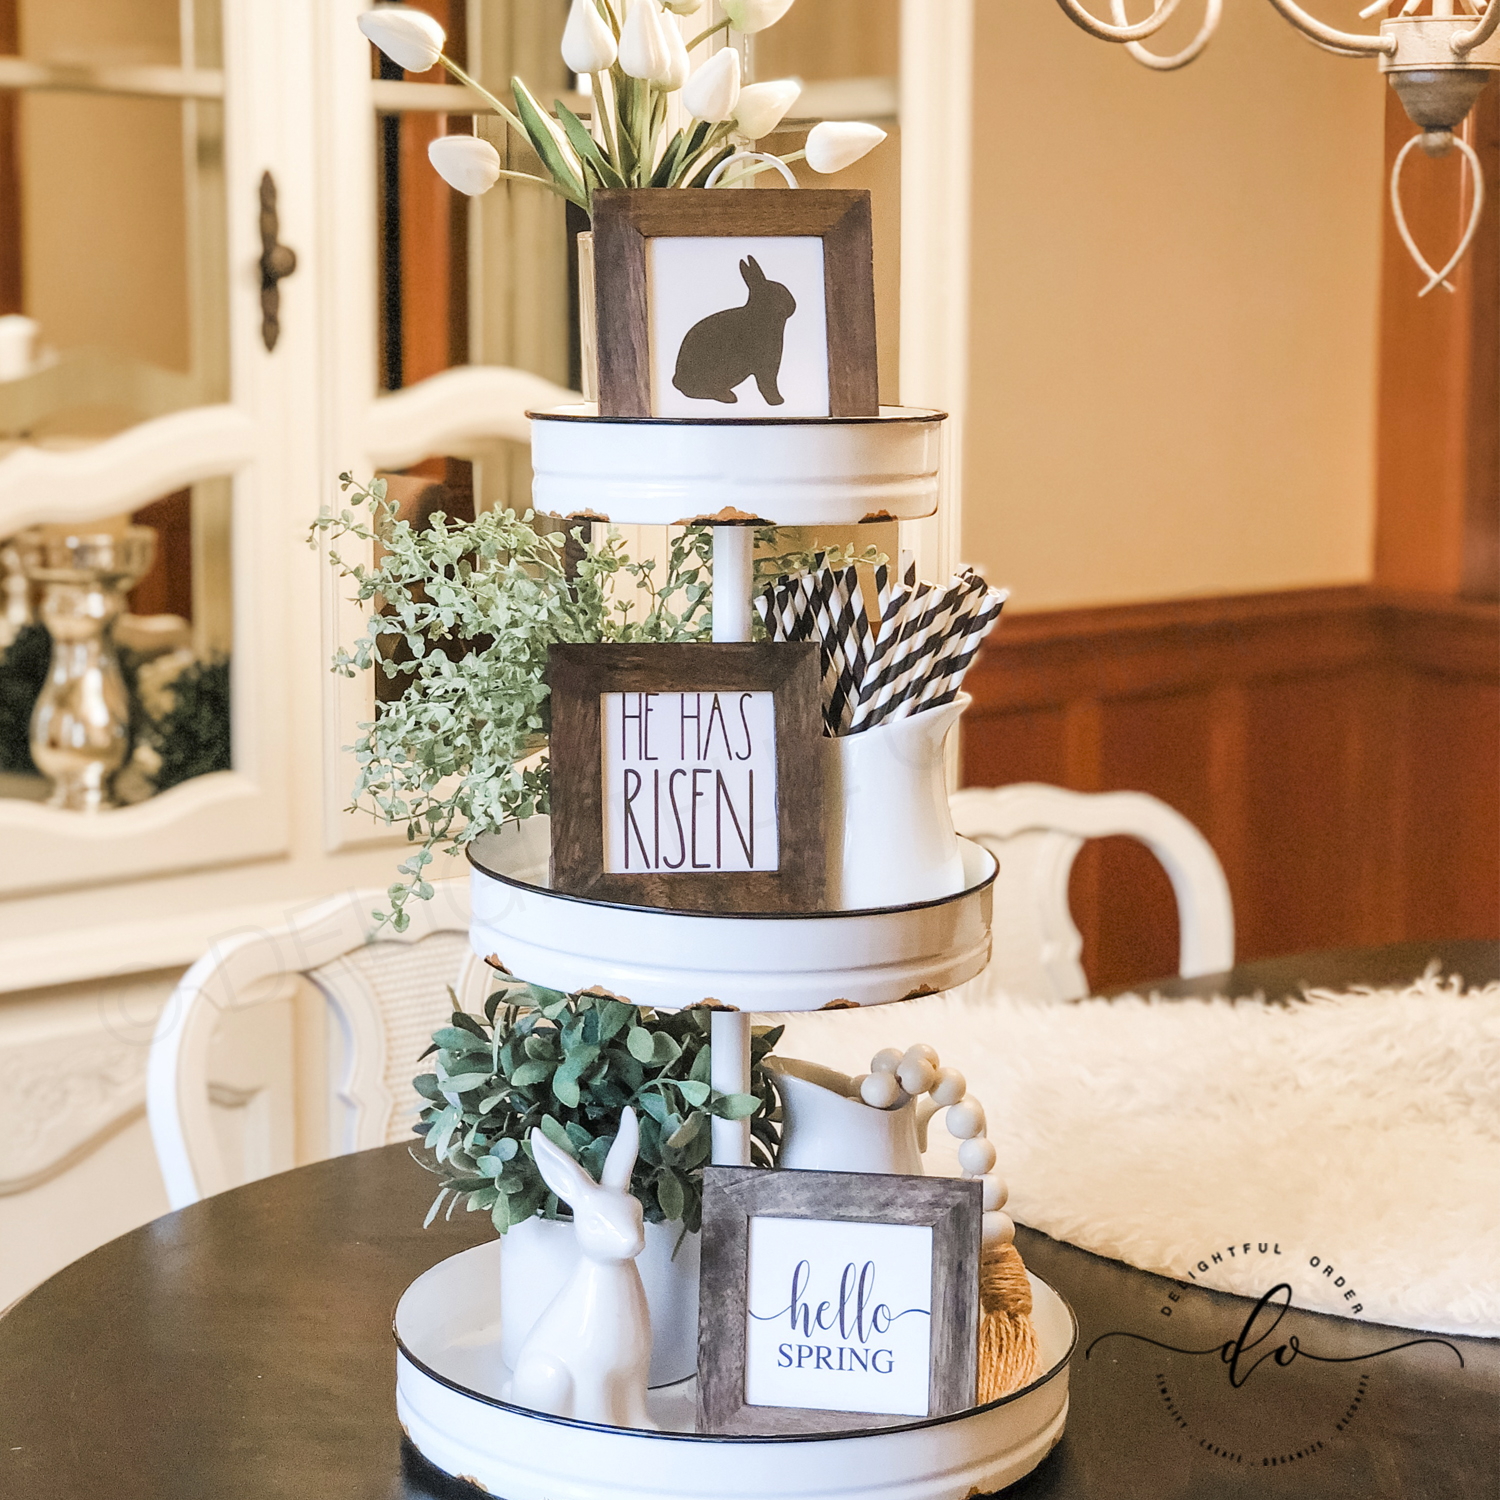 Tiered Tray Spring Decor